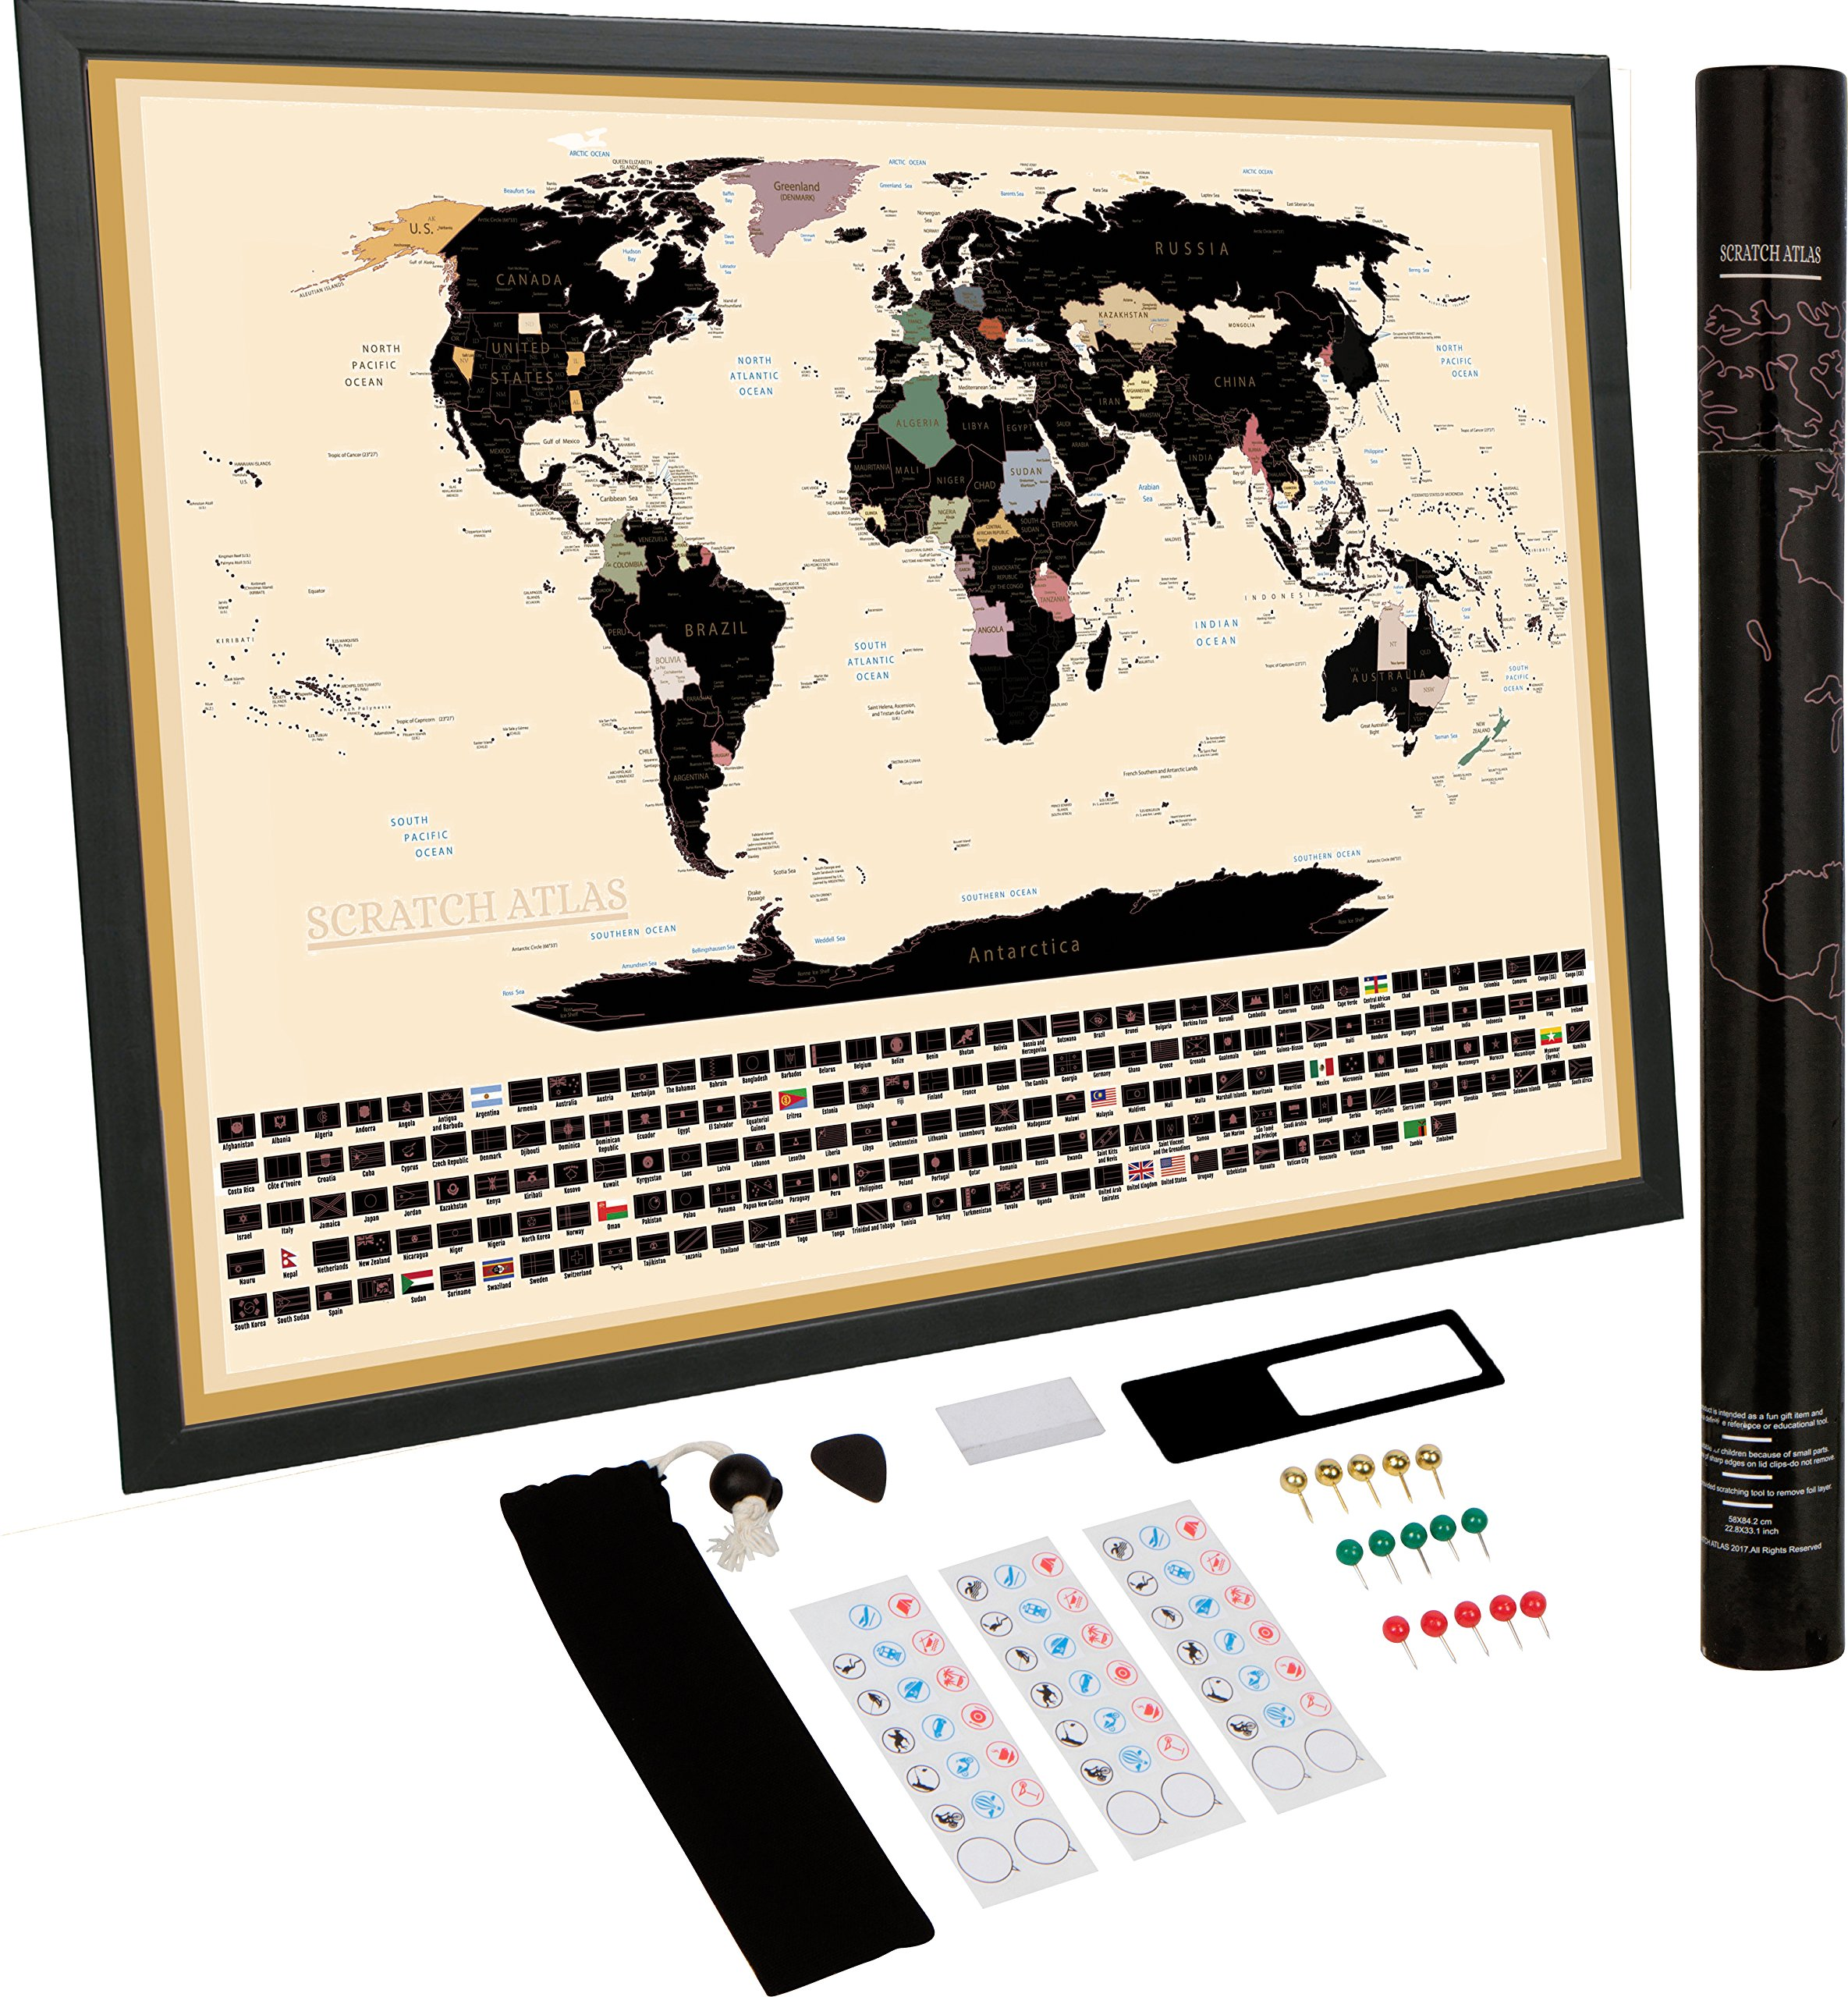 Scratch off World Map | Bonus Accessories | Travelers Journal | Scratchable Wall Decal Decor Poster | Bucket List | Vintage NoMad Notebook | Perfect for Cork Board | Activity Puzzle for Kids.